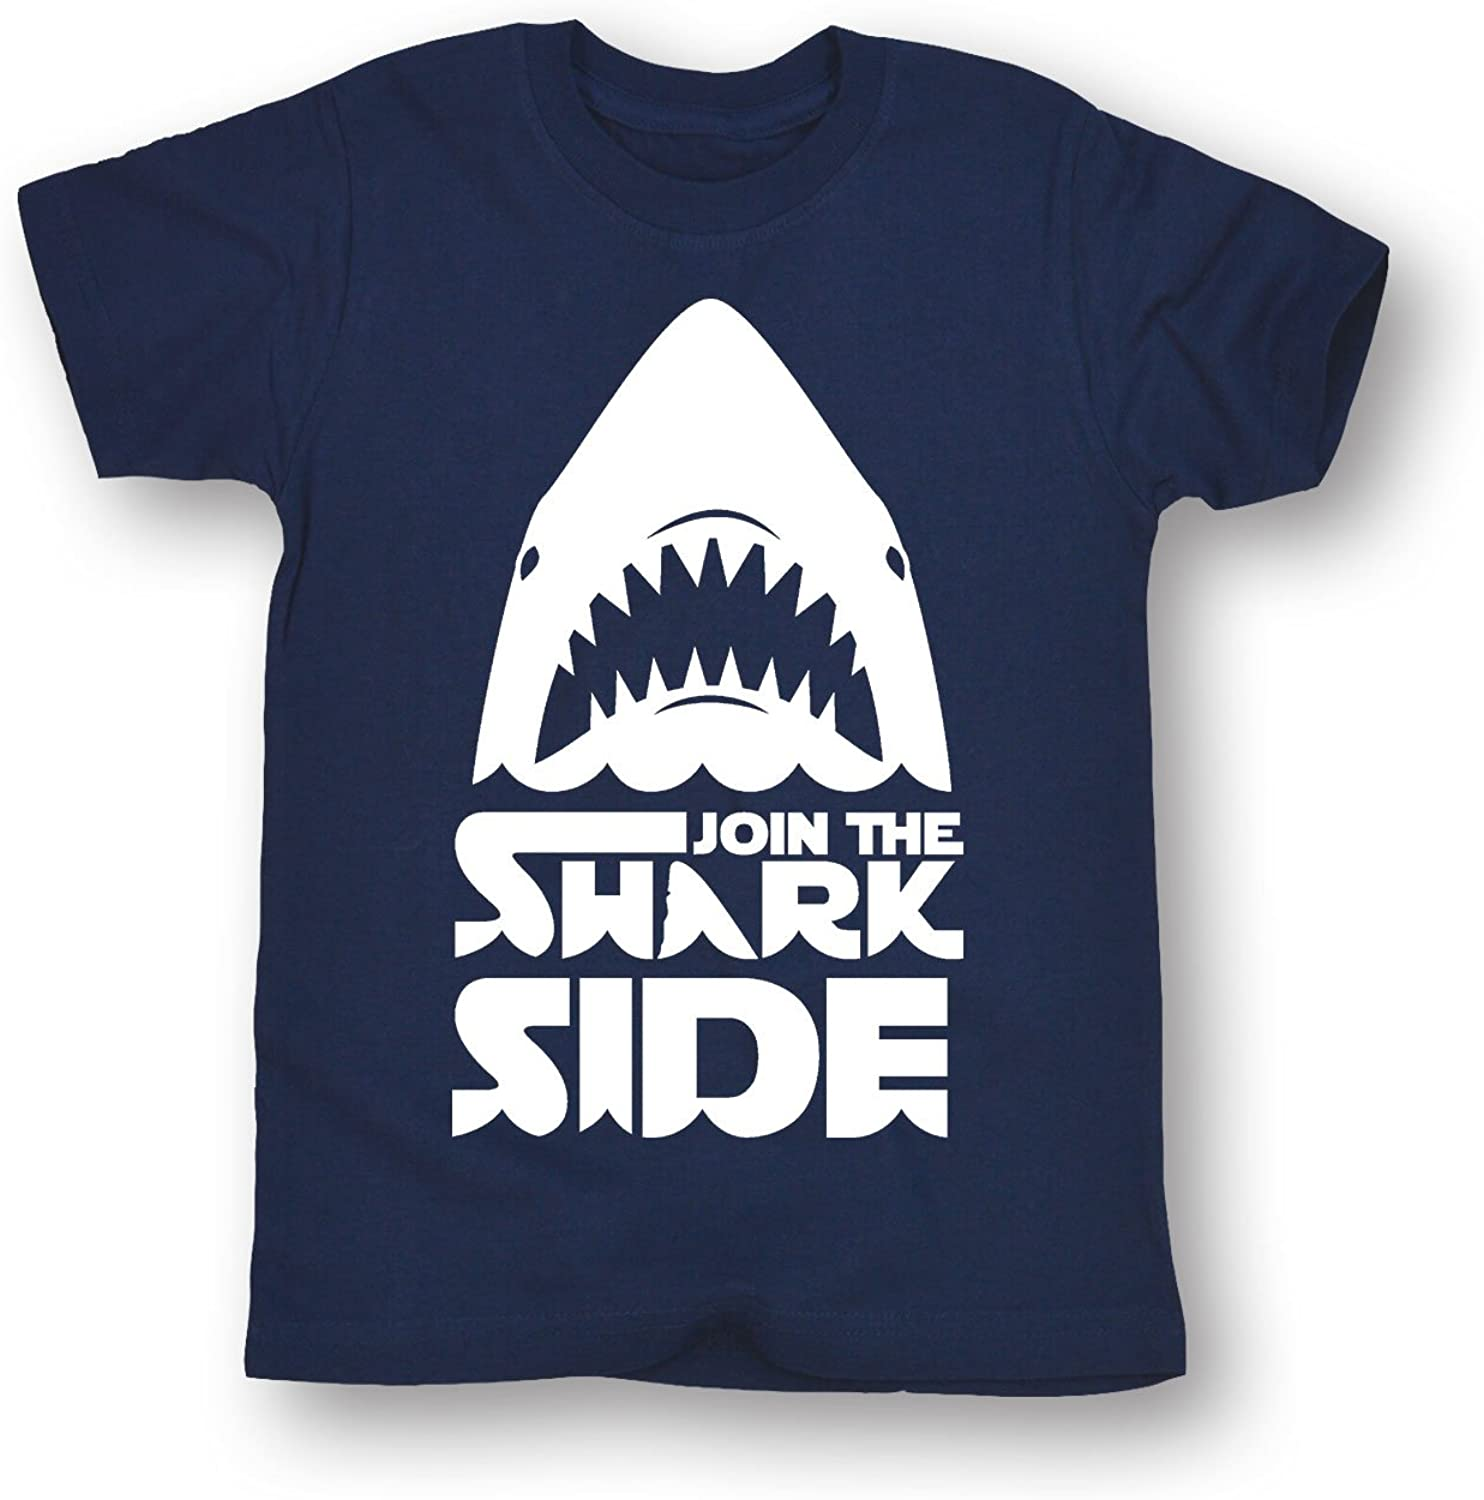 Join The Shark Side White Text T-Shirt-Funny Blue Tee for Boys